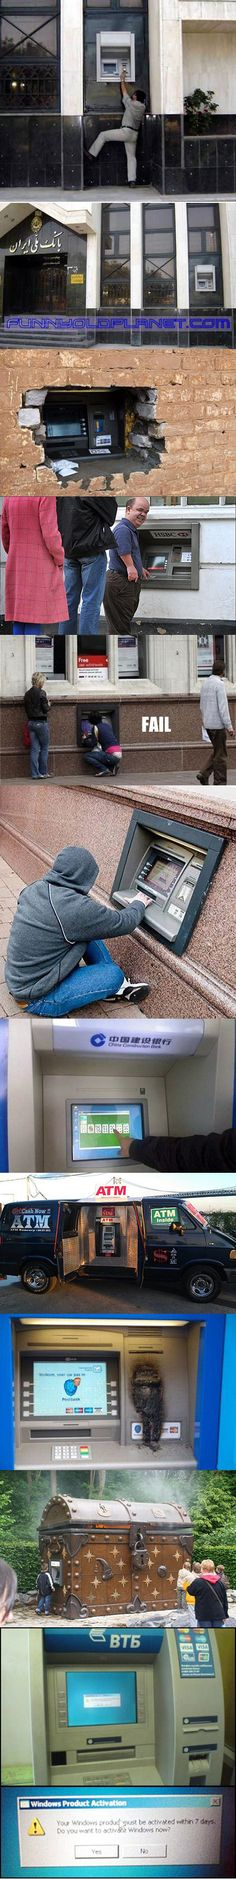 Here are some bizarre ATM design and machine FAILS that might shock you.